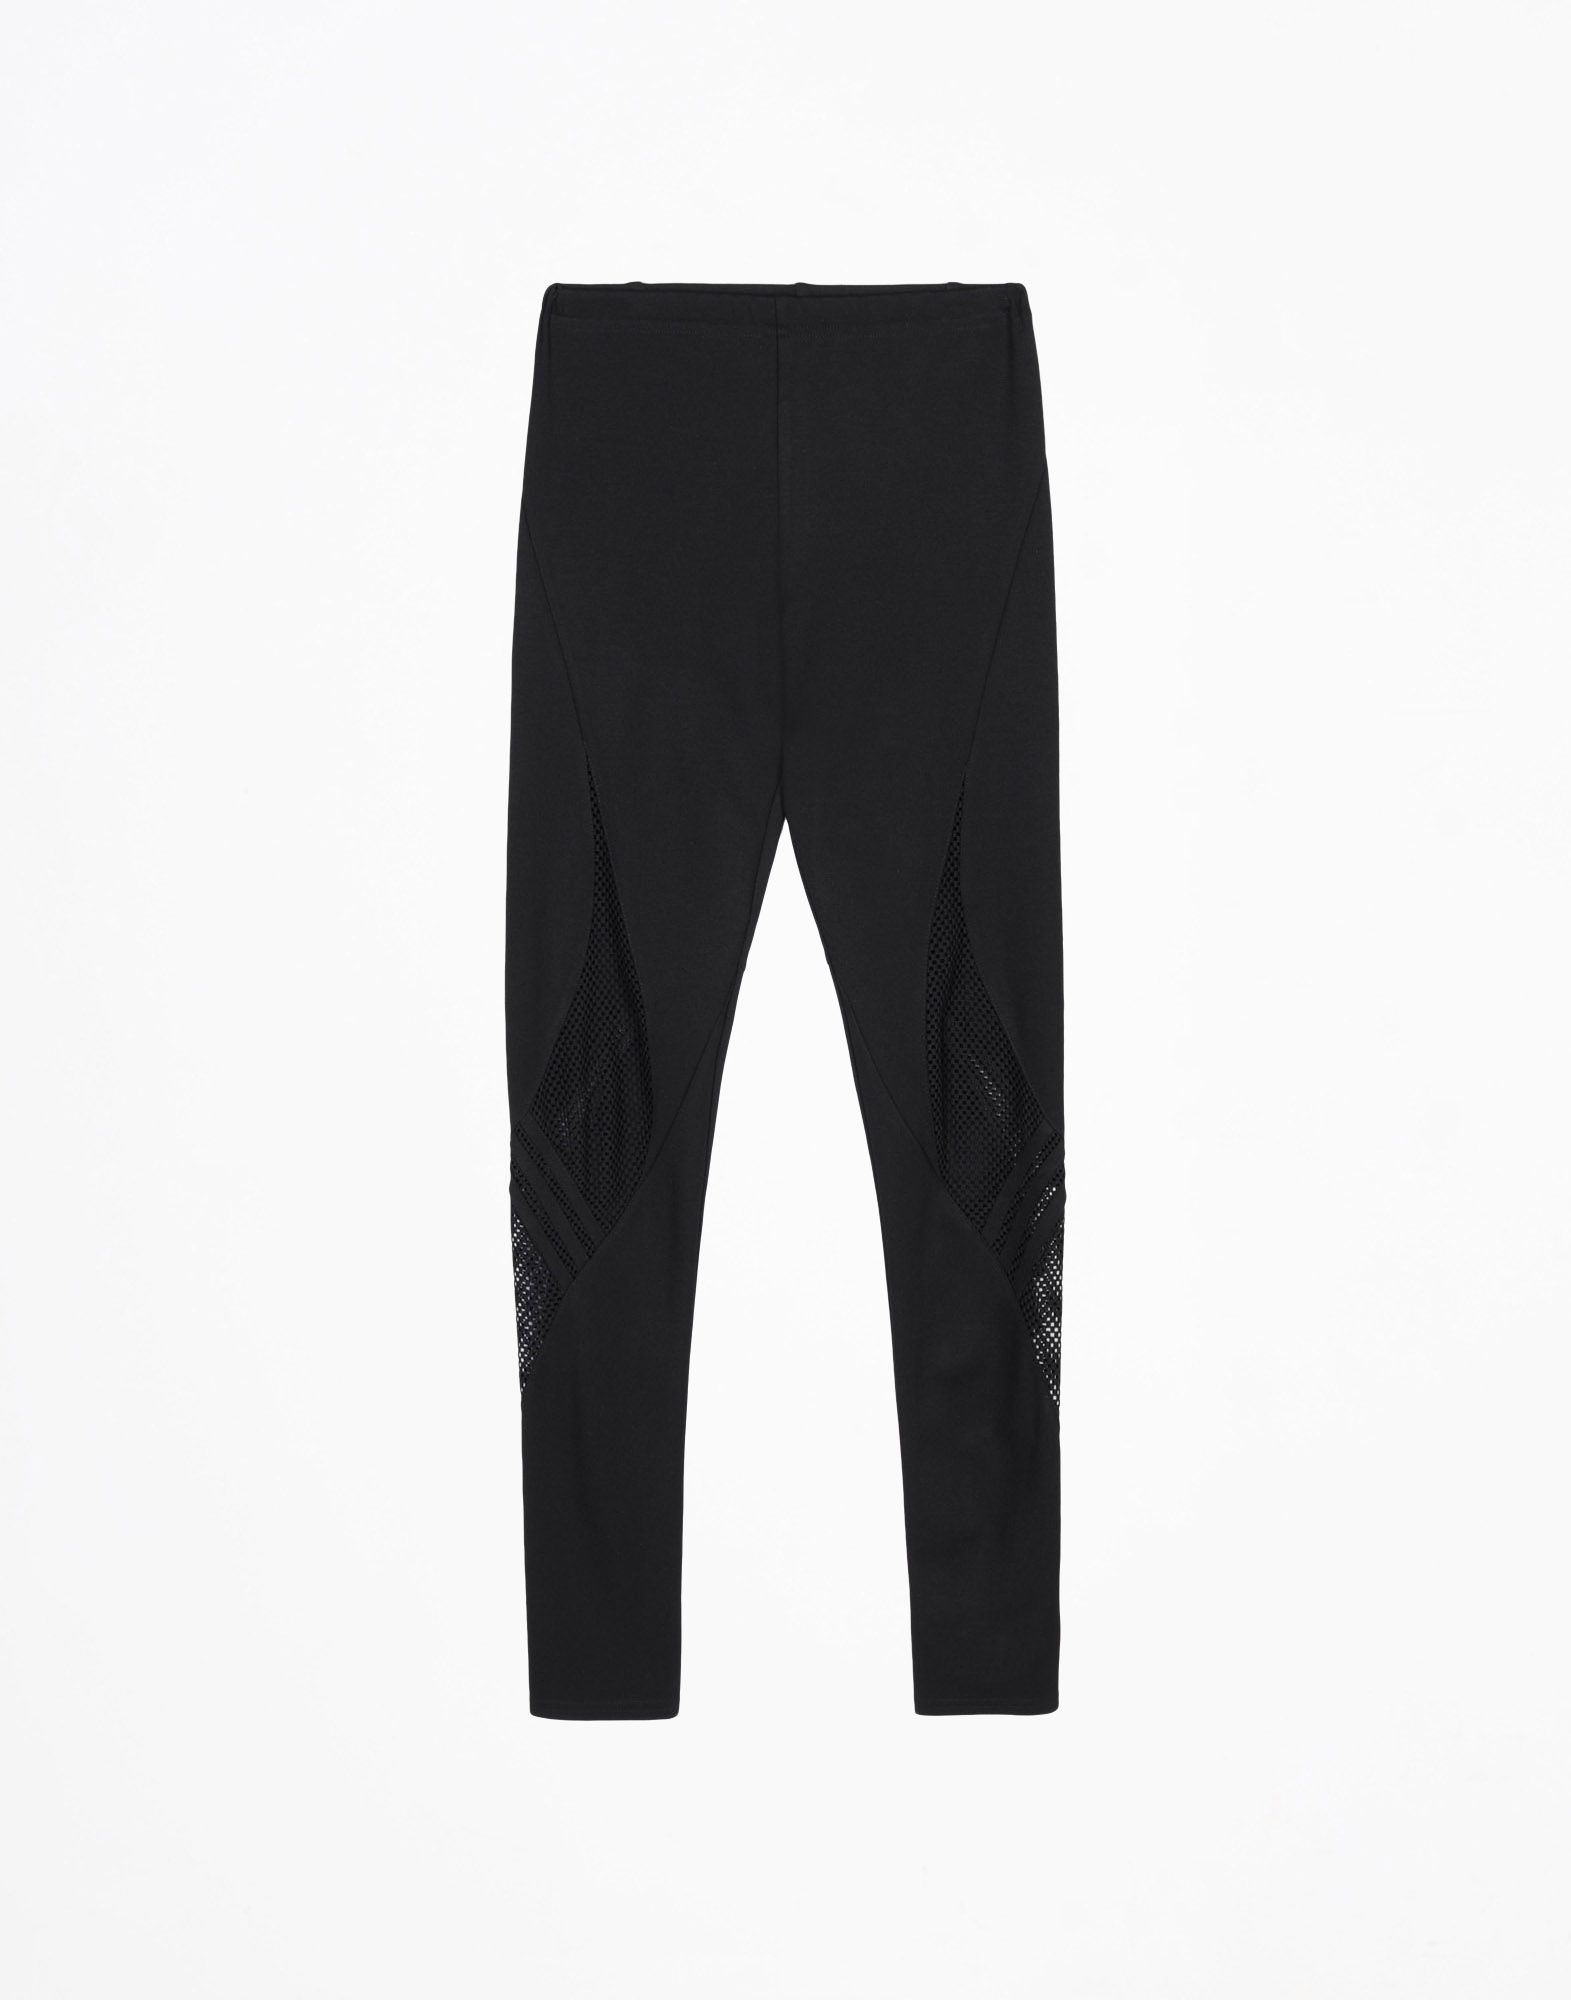 Y-3 LUX TRACK LEGGINGS PANTS woman Y-3 adidas